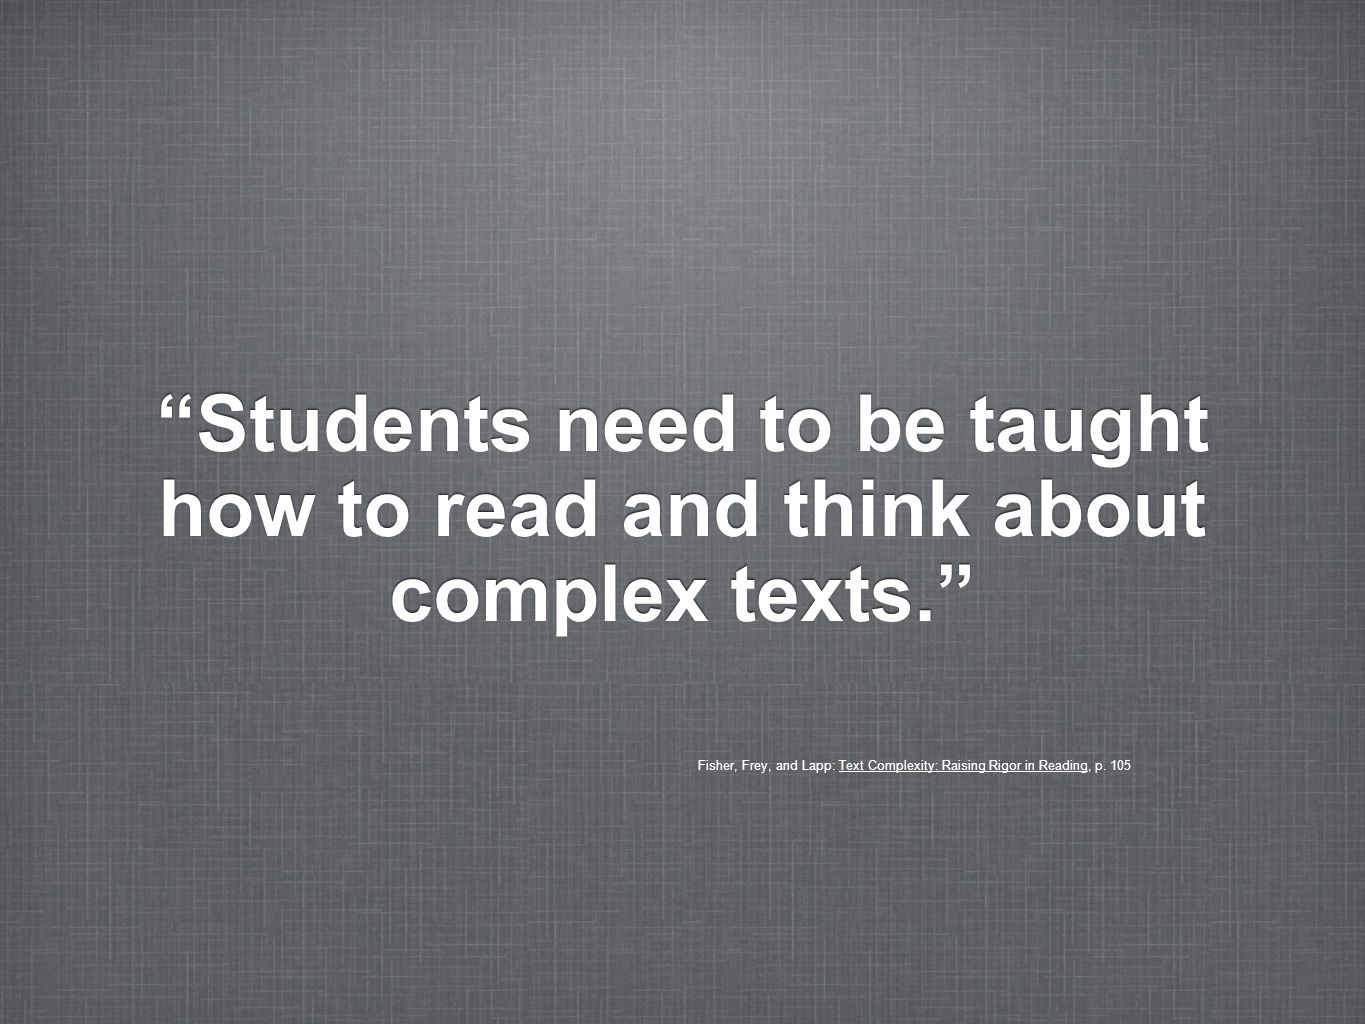 Students need to be taught how to read and think about complex texts